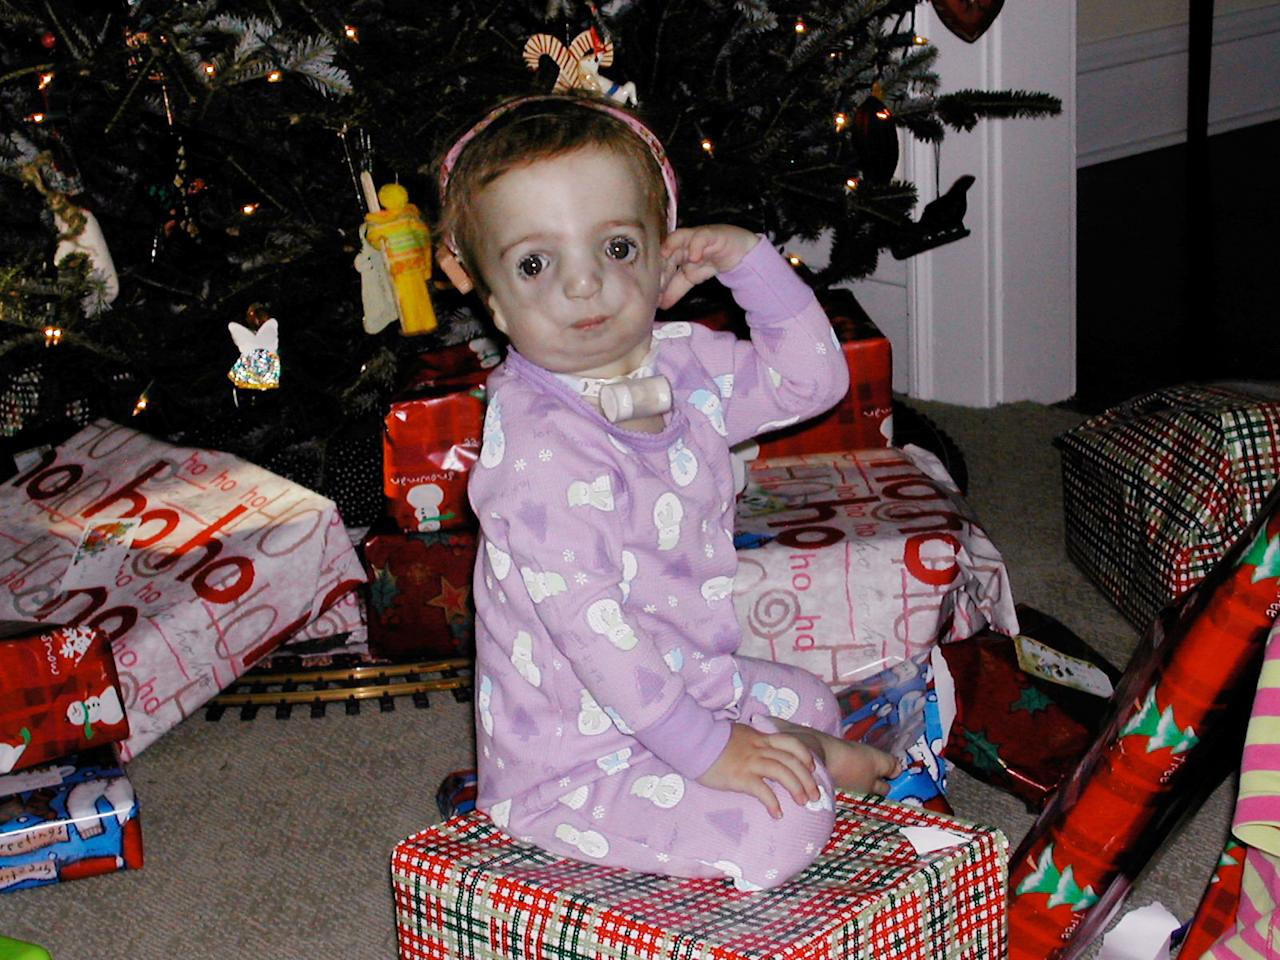 In this Dec. 25, 2003 photo provided by the family, Clara Beatty, then 16 months old, sits on top of a wrapped present next to a Christmas tree at home in Winnetka, Ill. Clara was born with facial deformities caused by a genetic mutation called Treacher Collins syndrome. She wears hearing aids and will likely undergo cosmetic surgery to extend her jaw and increase the size of her cheekbones when she is a teenager. (AP Photo)